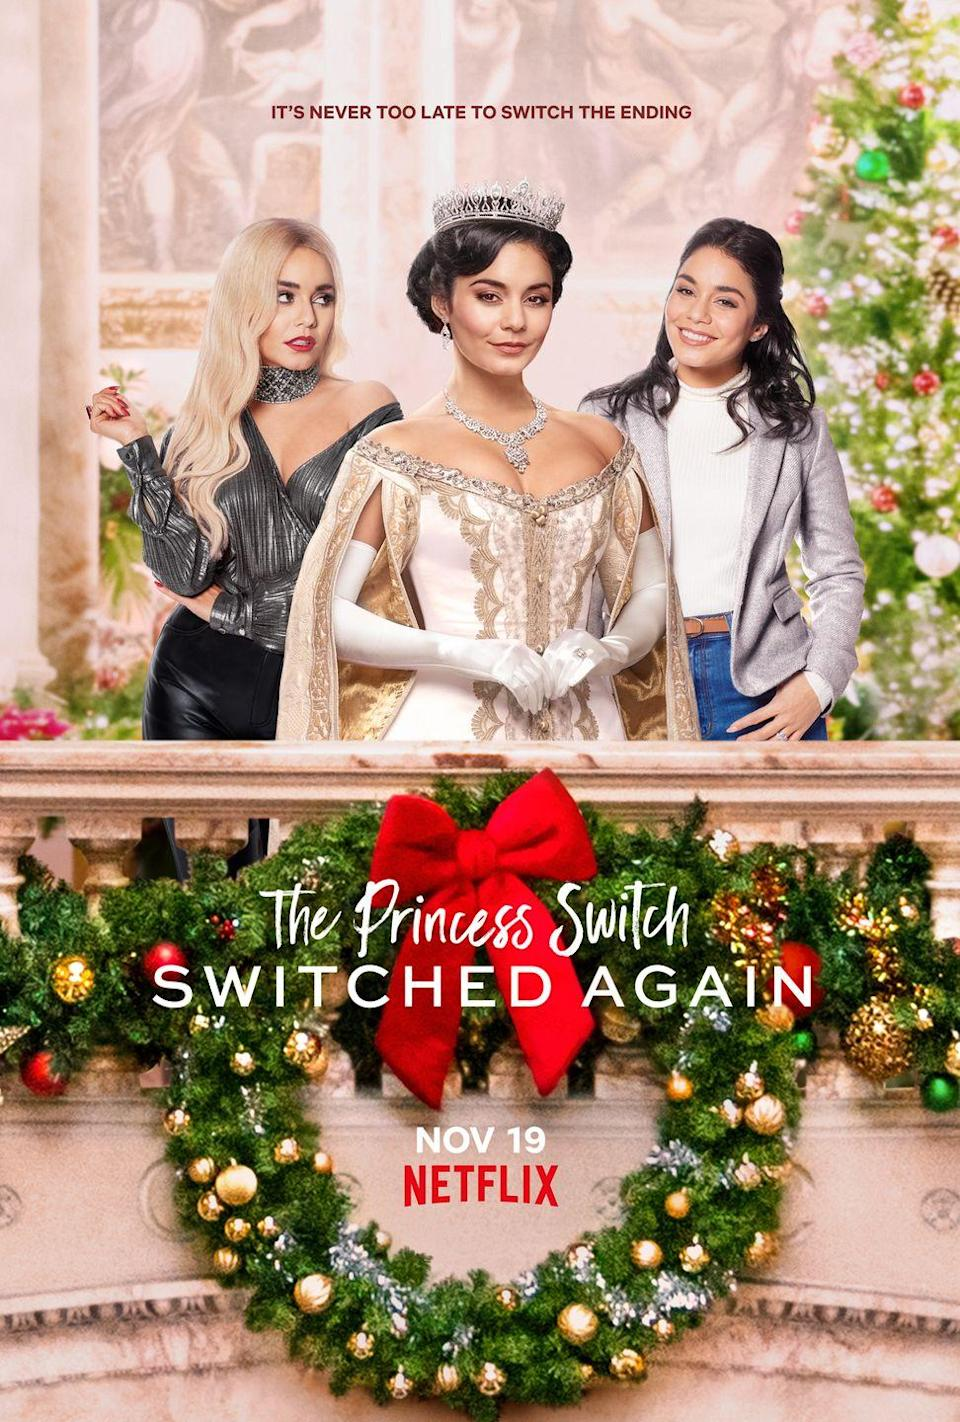 <p>Is it even Christmas if Vanessa Hudgens isn't getting mistaken for the queen of a small country or a scheming cousin trying to ruin the holiday season? In the third installment of this Netflix original movie series, Queen Margaret and Princess Stacey (both played by Vanessa Hudgens) must enlist the help of cousin Fiona (also played by Vanessa Hudgens) when a priceless royal relic is stolen.</p><p>But will a dashing, mysterious man from her past help Fiona reform her selfish ways? And will there be the introduction of a fourth character <em>also </em>played by Vanessa Hudgens? You'll just have to wait until this winter to find out. </p><p><strong>Premiering Winter 2021</strong></p>